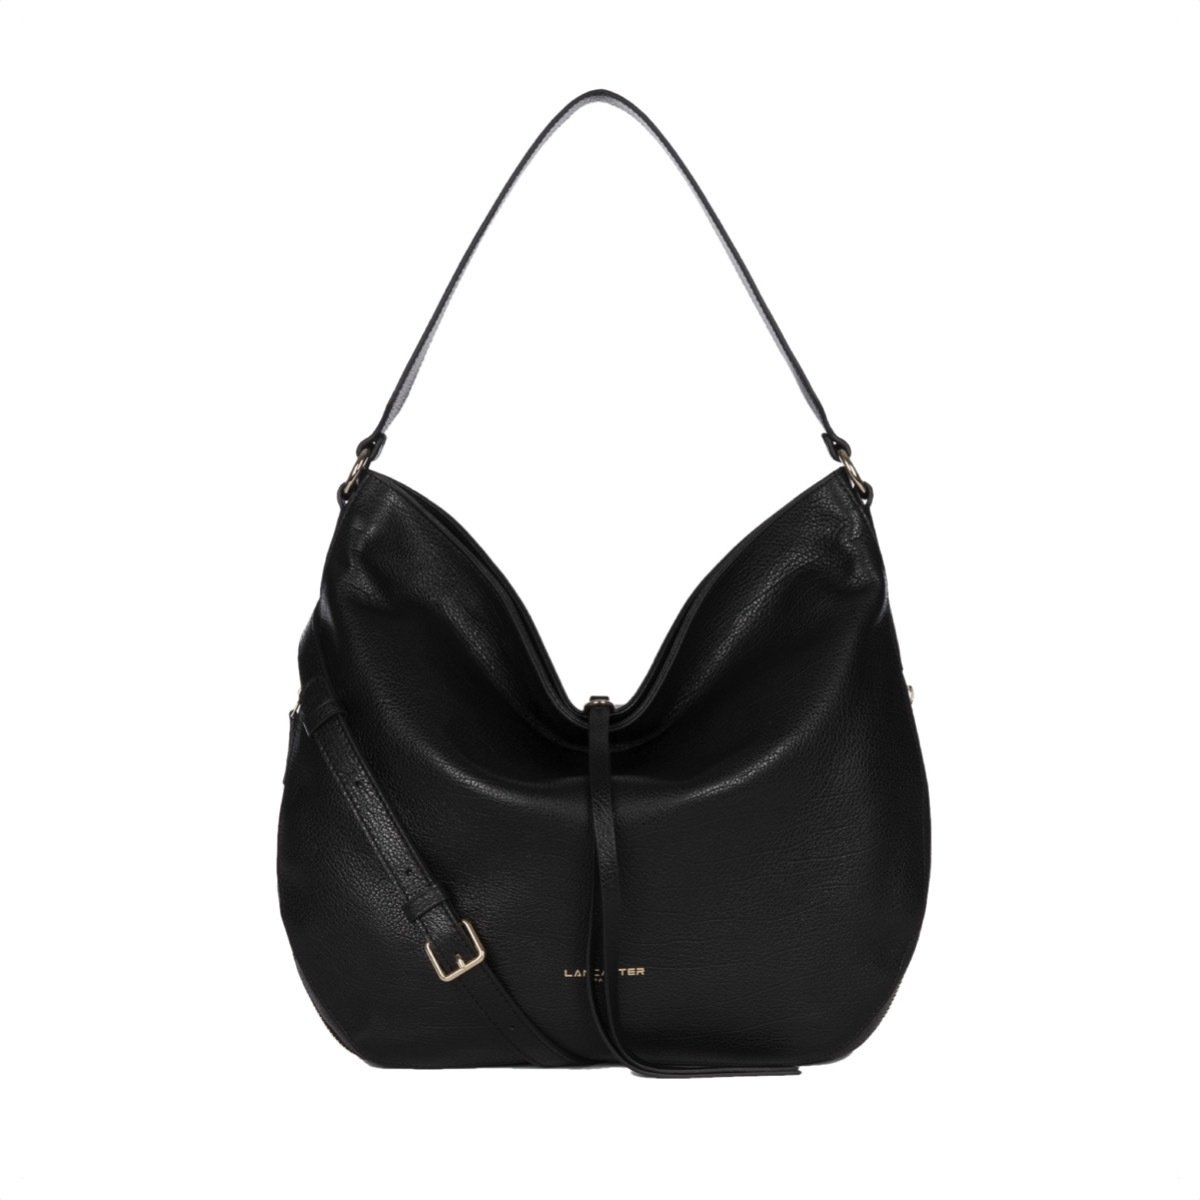 LANCASTER - Dune Large shoulder bag - Noir